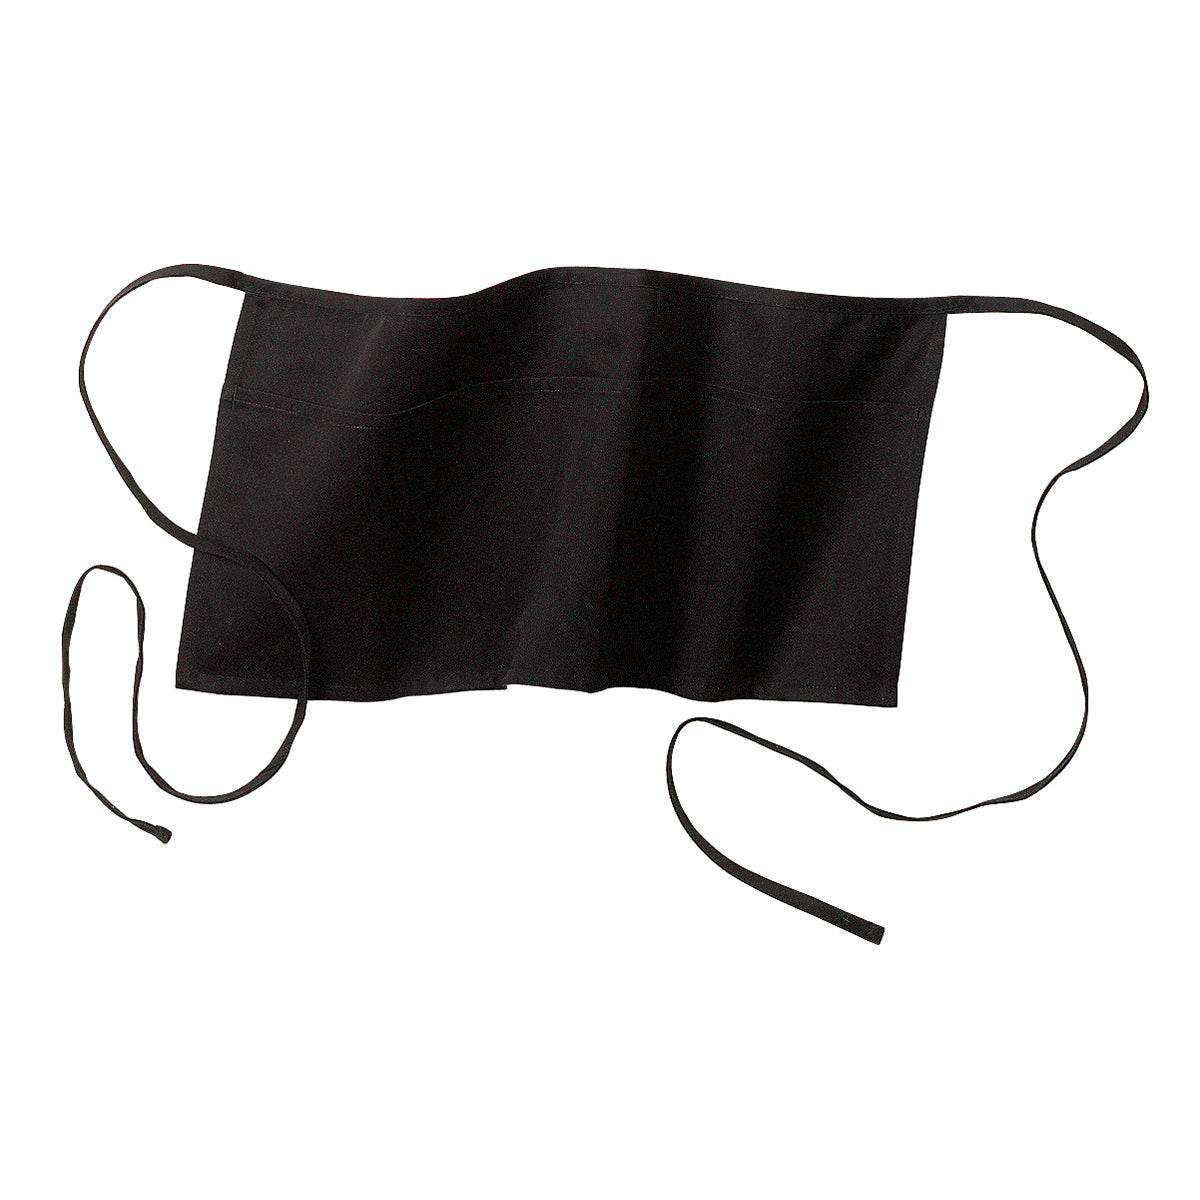 Waist Apron with Pockets Black